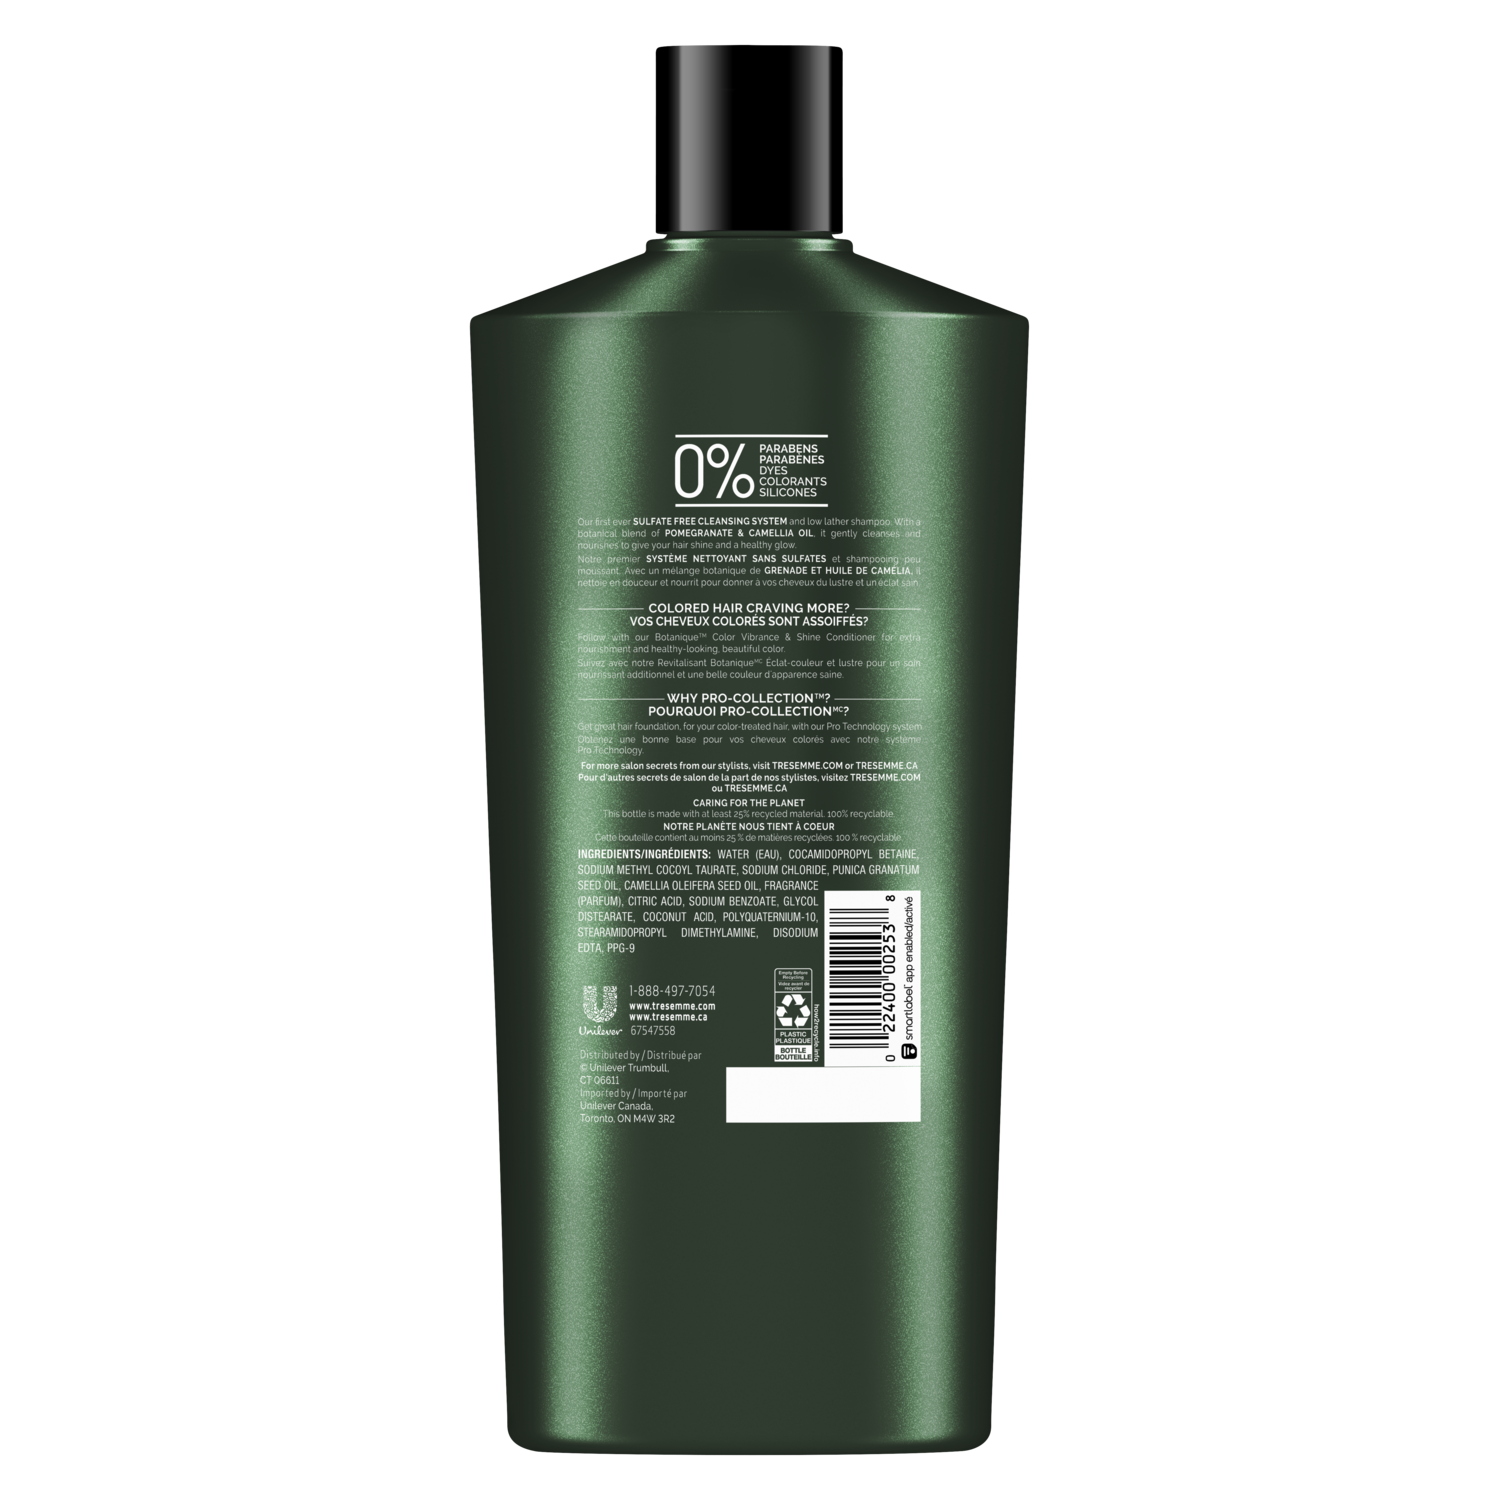 Shampoo for Every Hair Type | Tresemme